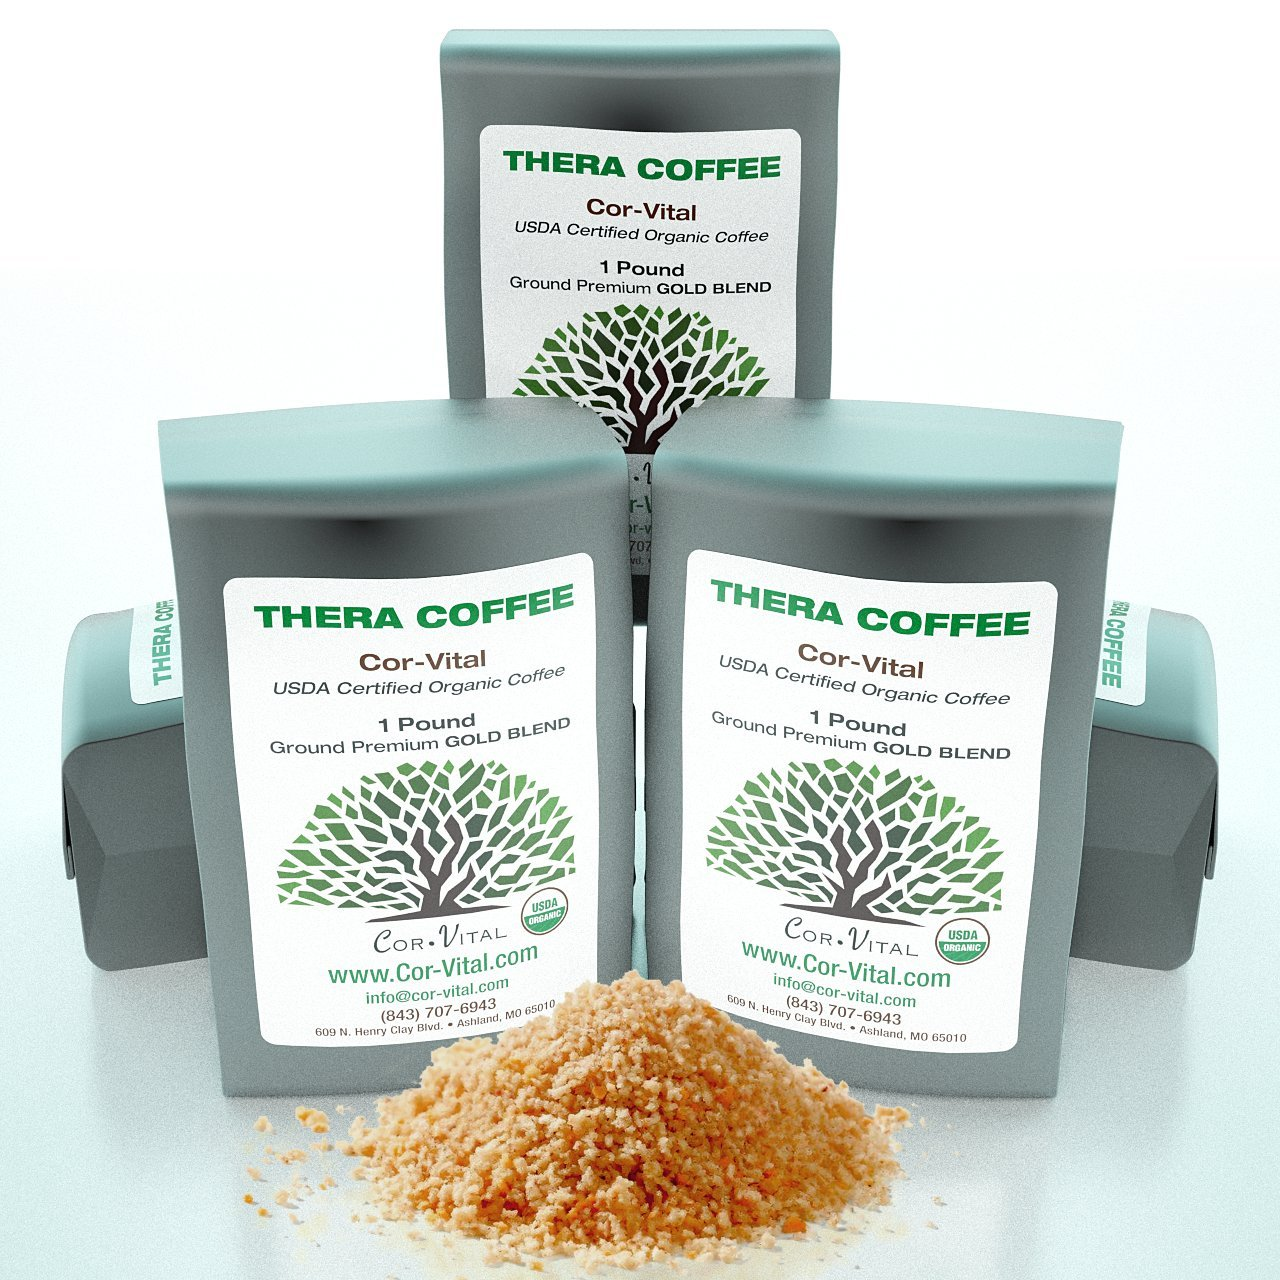 ''The Real Deal'' Enema Coffee Best Coffee for Enema - 5lb Bag - 100% Organic Green Beans Ground - *Free* Detox Recipe - Gerson Approved - Compare Our Enema Gold to Regular Roast by Cor-Vital